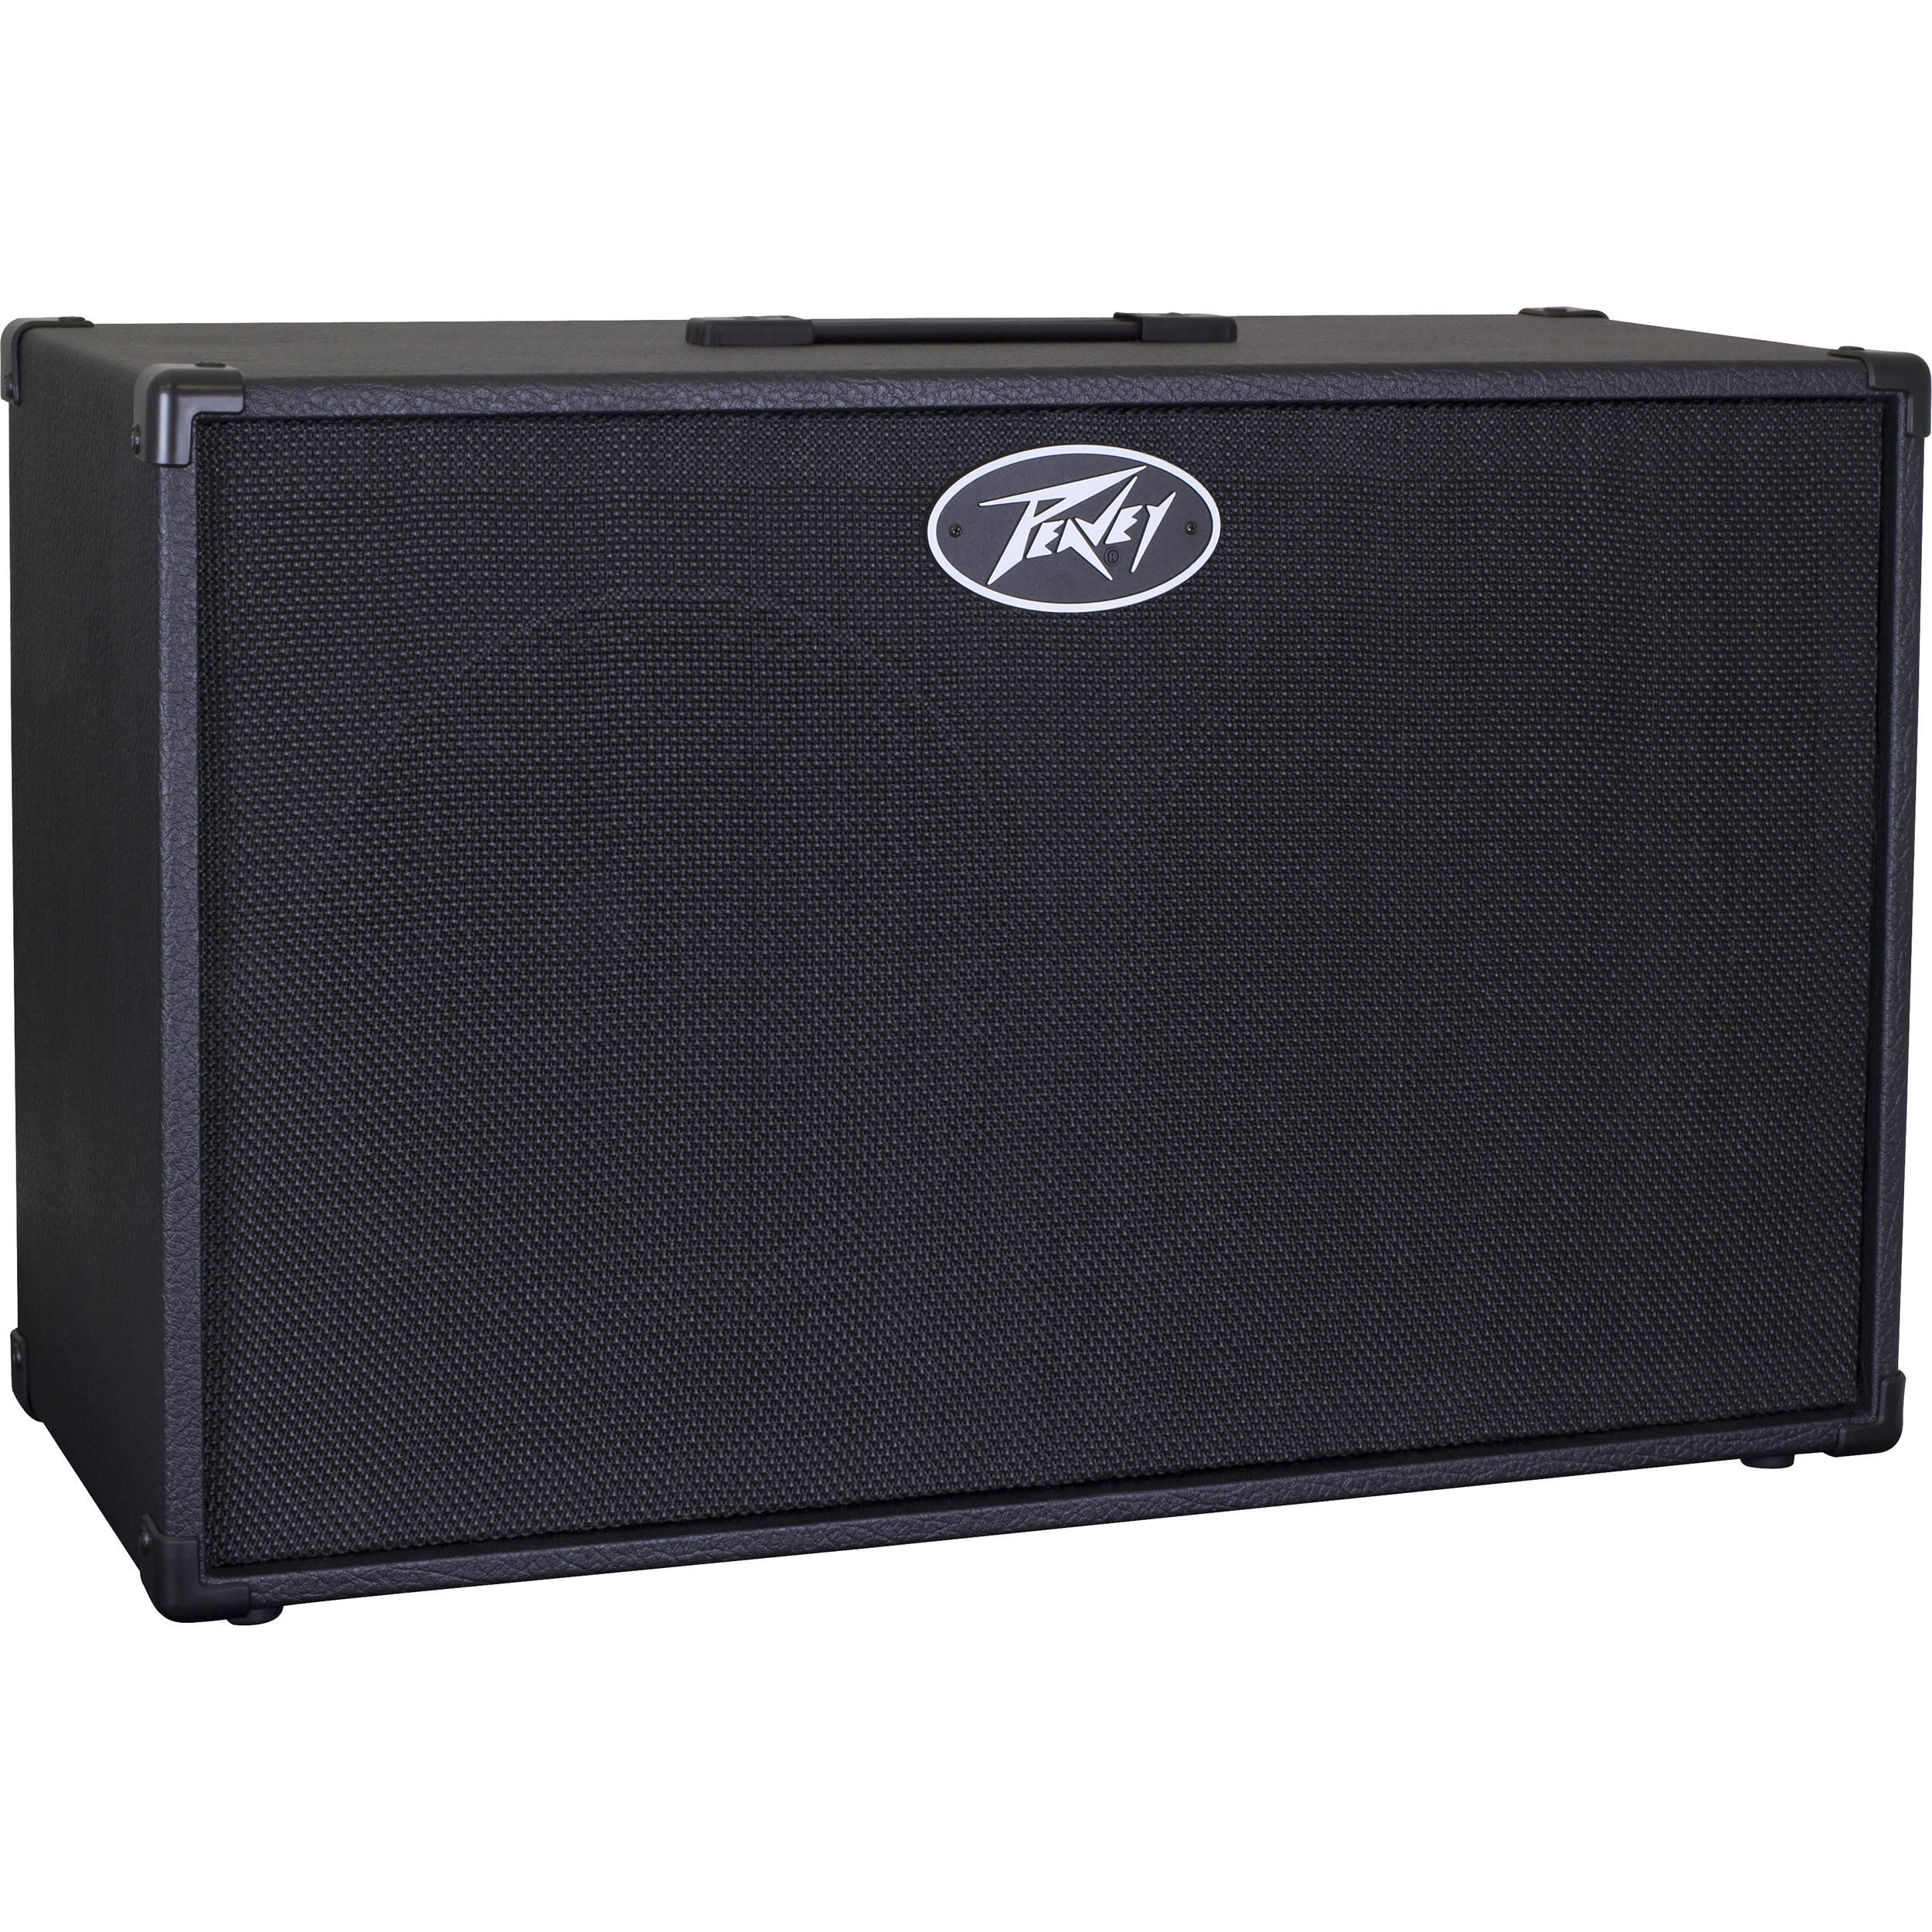 Peavey 212 Extension Cabinet 2x12 Quot Guitar Cab With 80